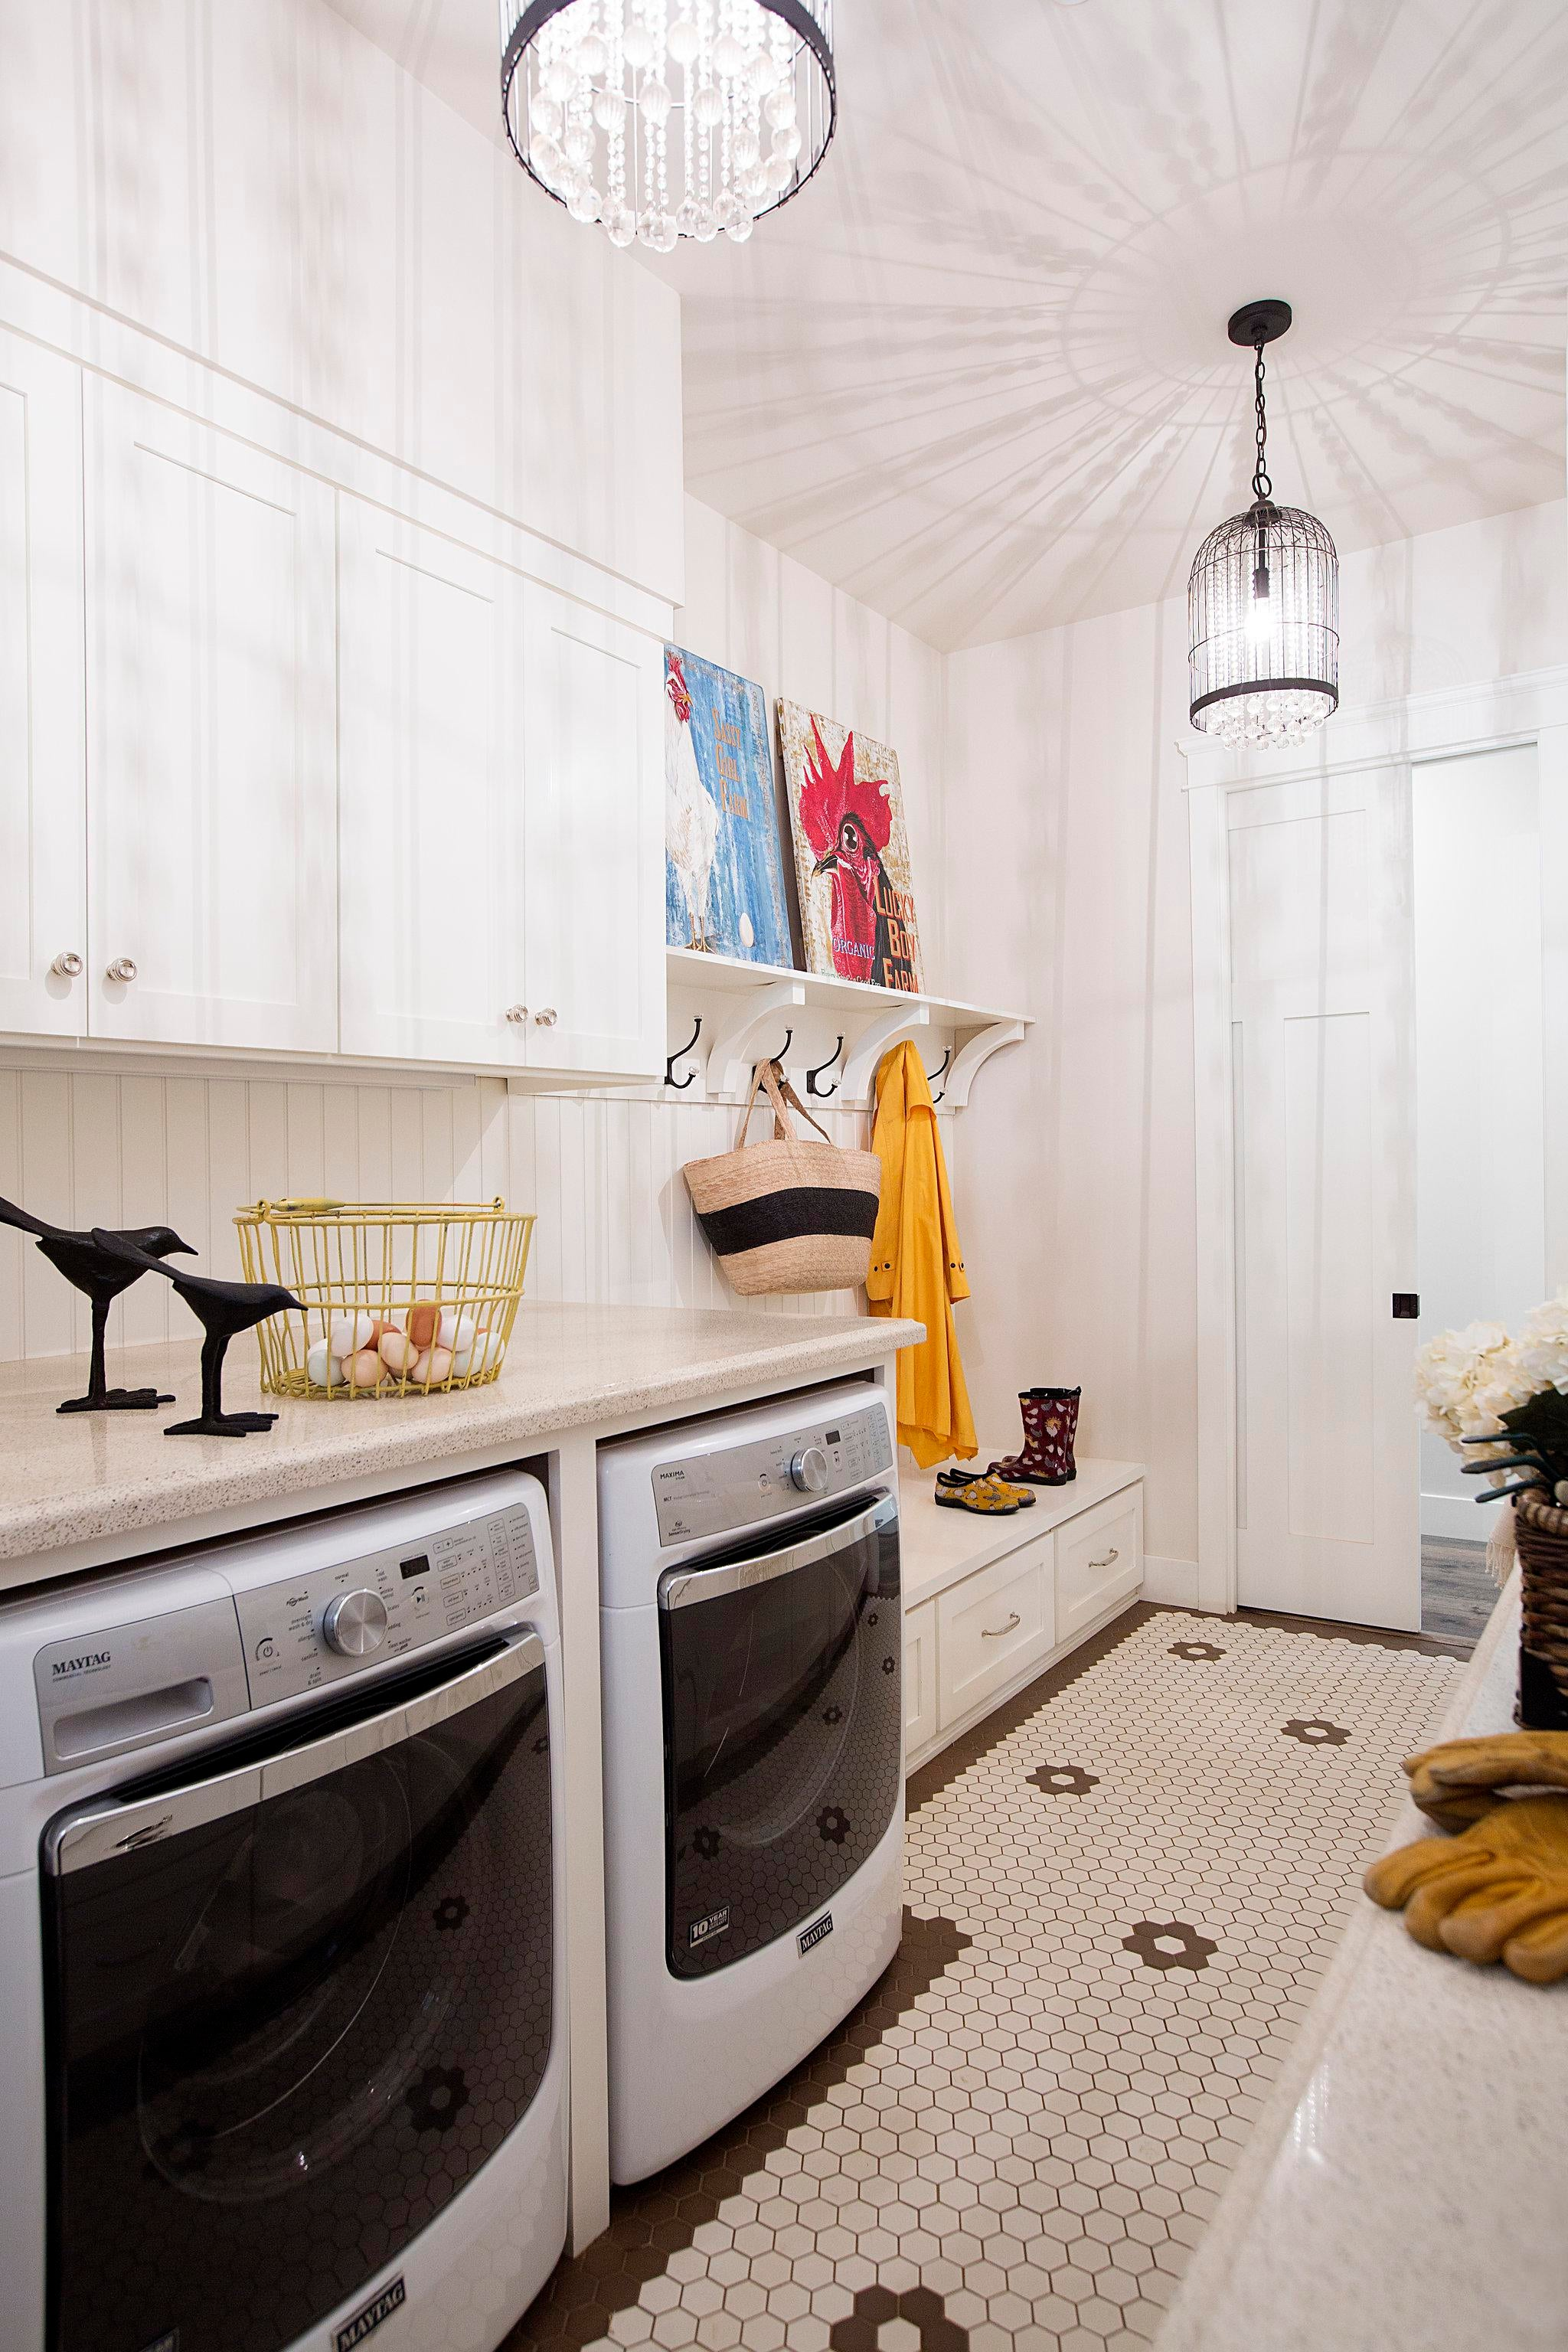 Elegant  Light and Bright Laundry Room Mudroom in Modern Farmhouse     Elegant  Light and Bright Laundry Room Mudroom in Modern Farmhouse in Auburn   CA  PepperJack Interiors